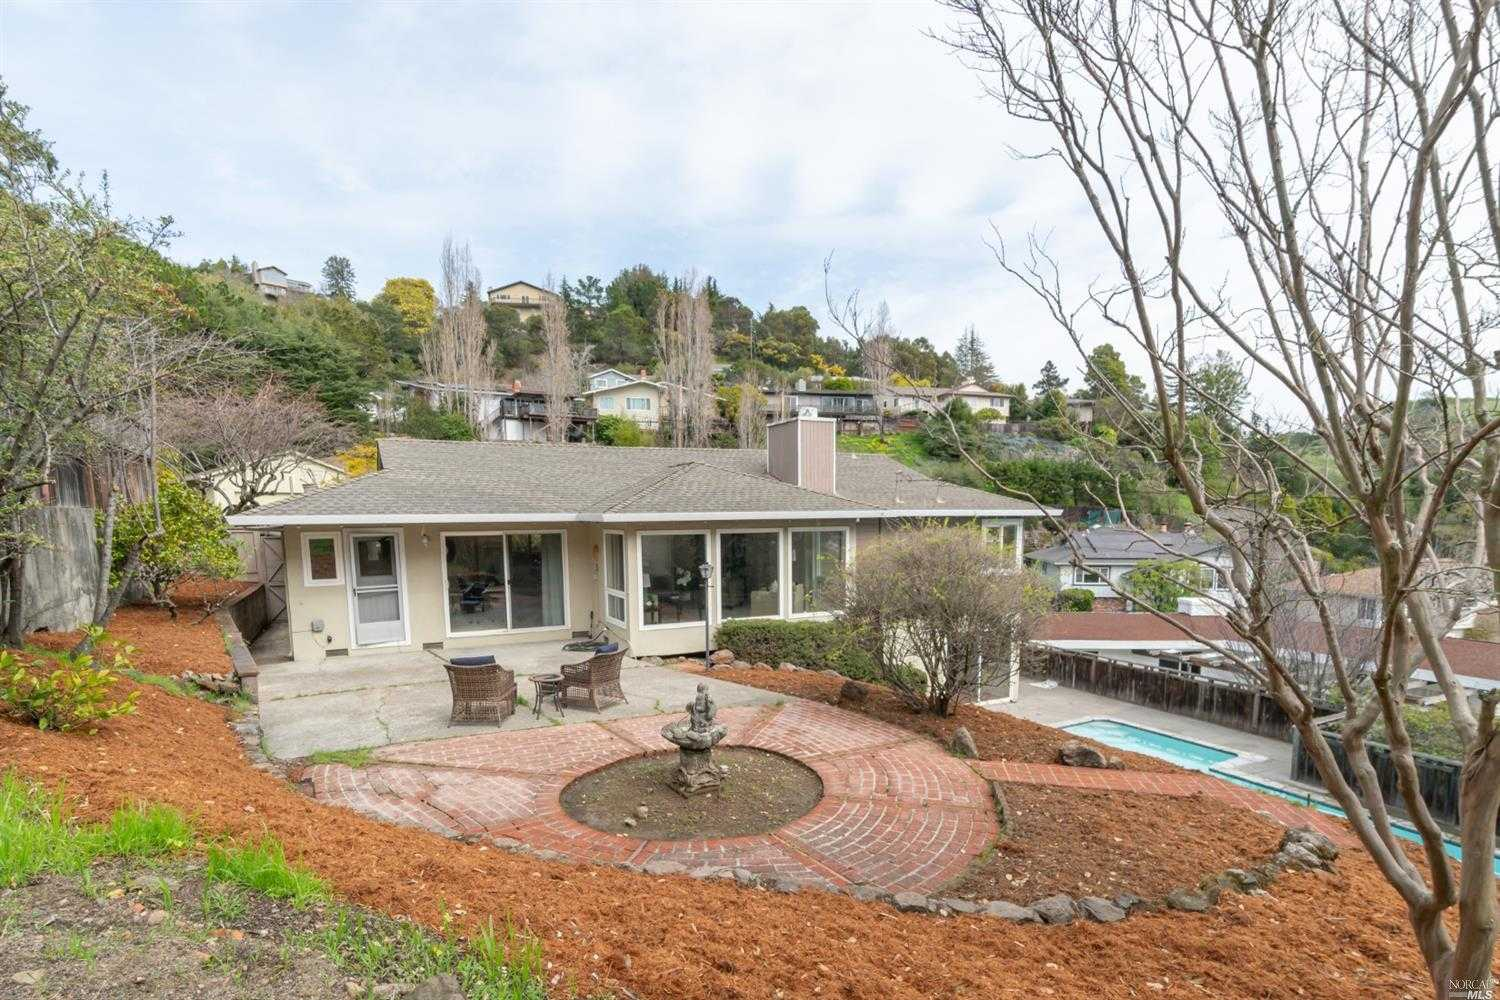 $1,550,000 - 4Br/3Ba -  for Sale in Greenbrae